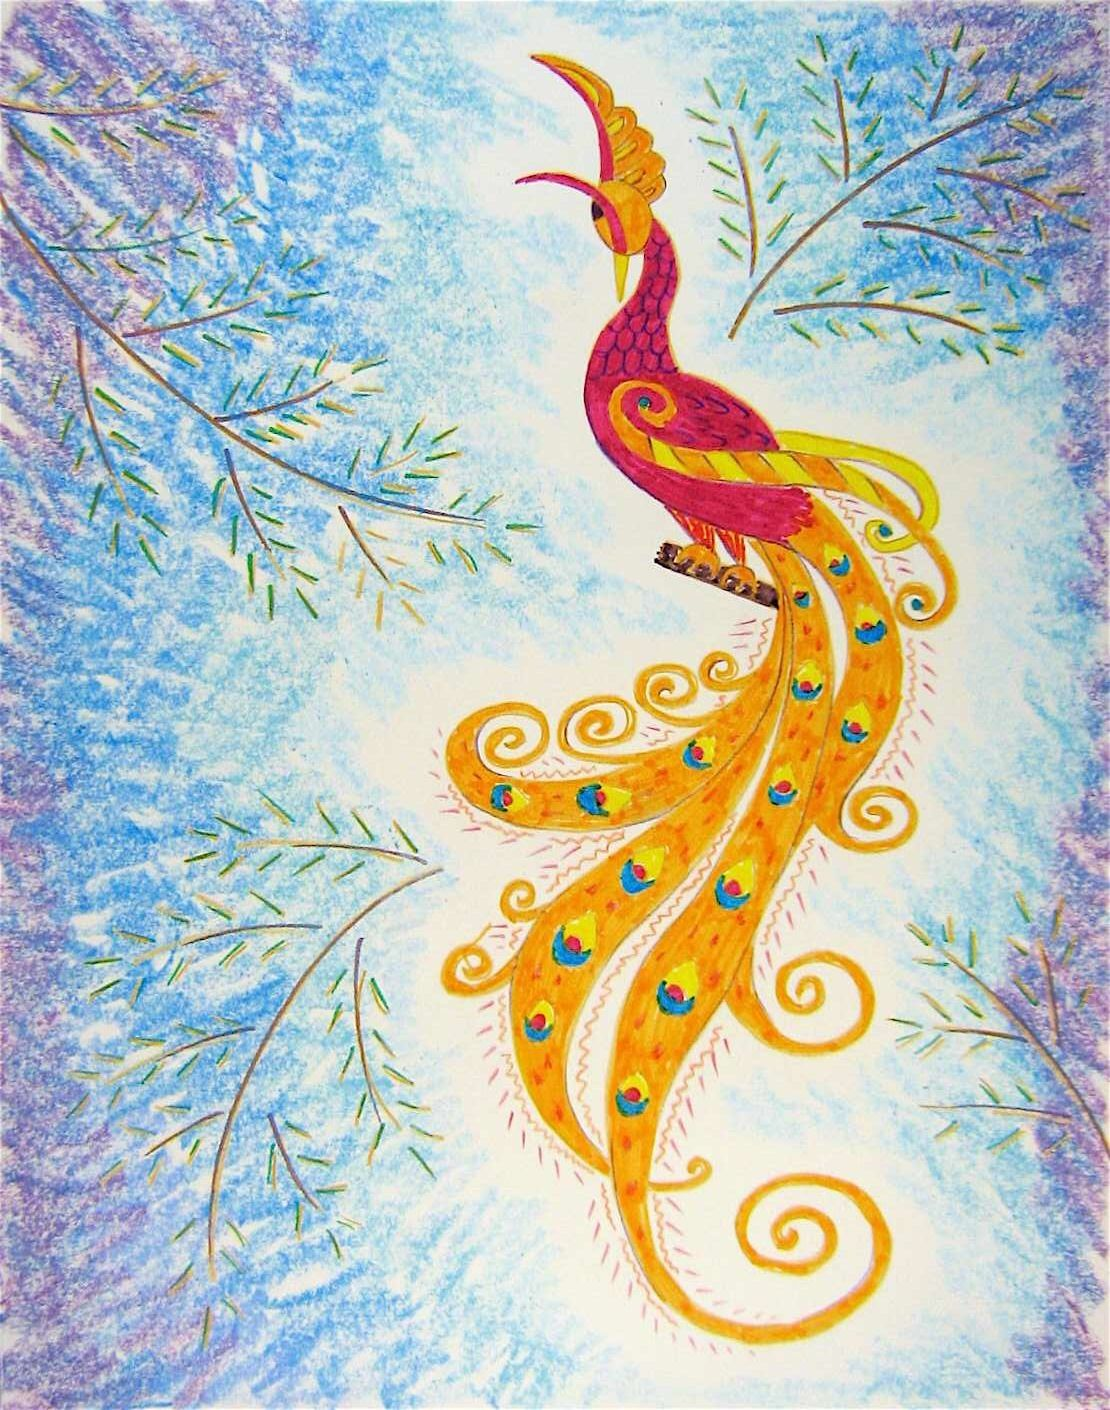 Art Lesson Iii 6 The Russian Firebird Learn About The Firebird Story Learn To Use Chalk